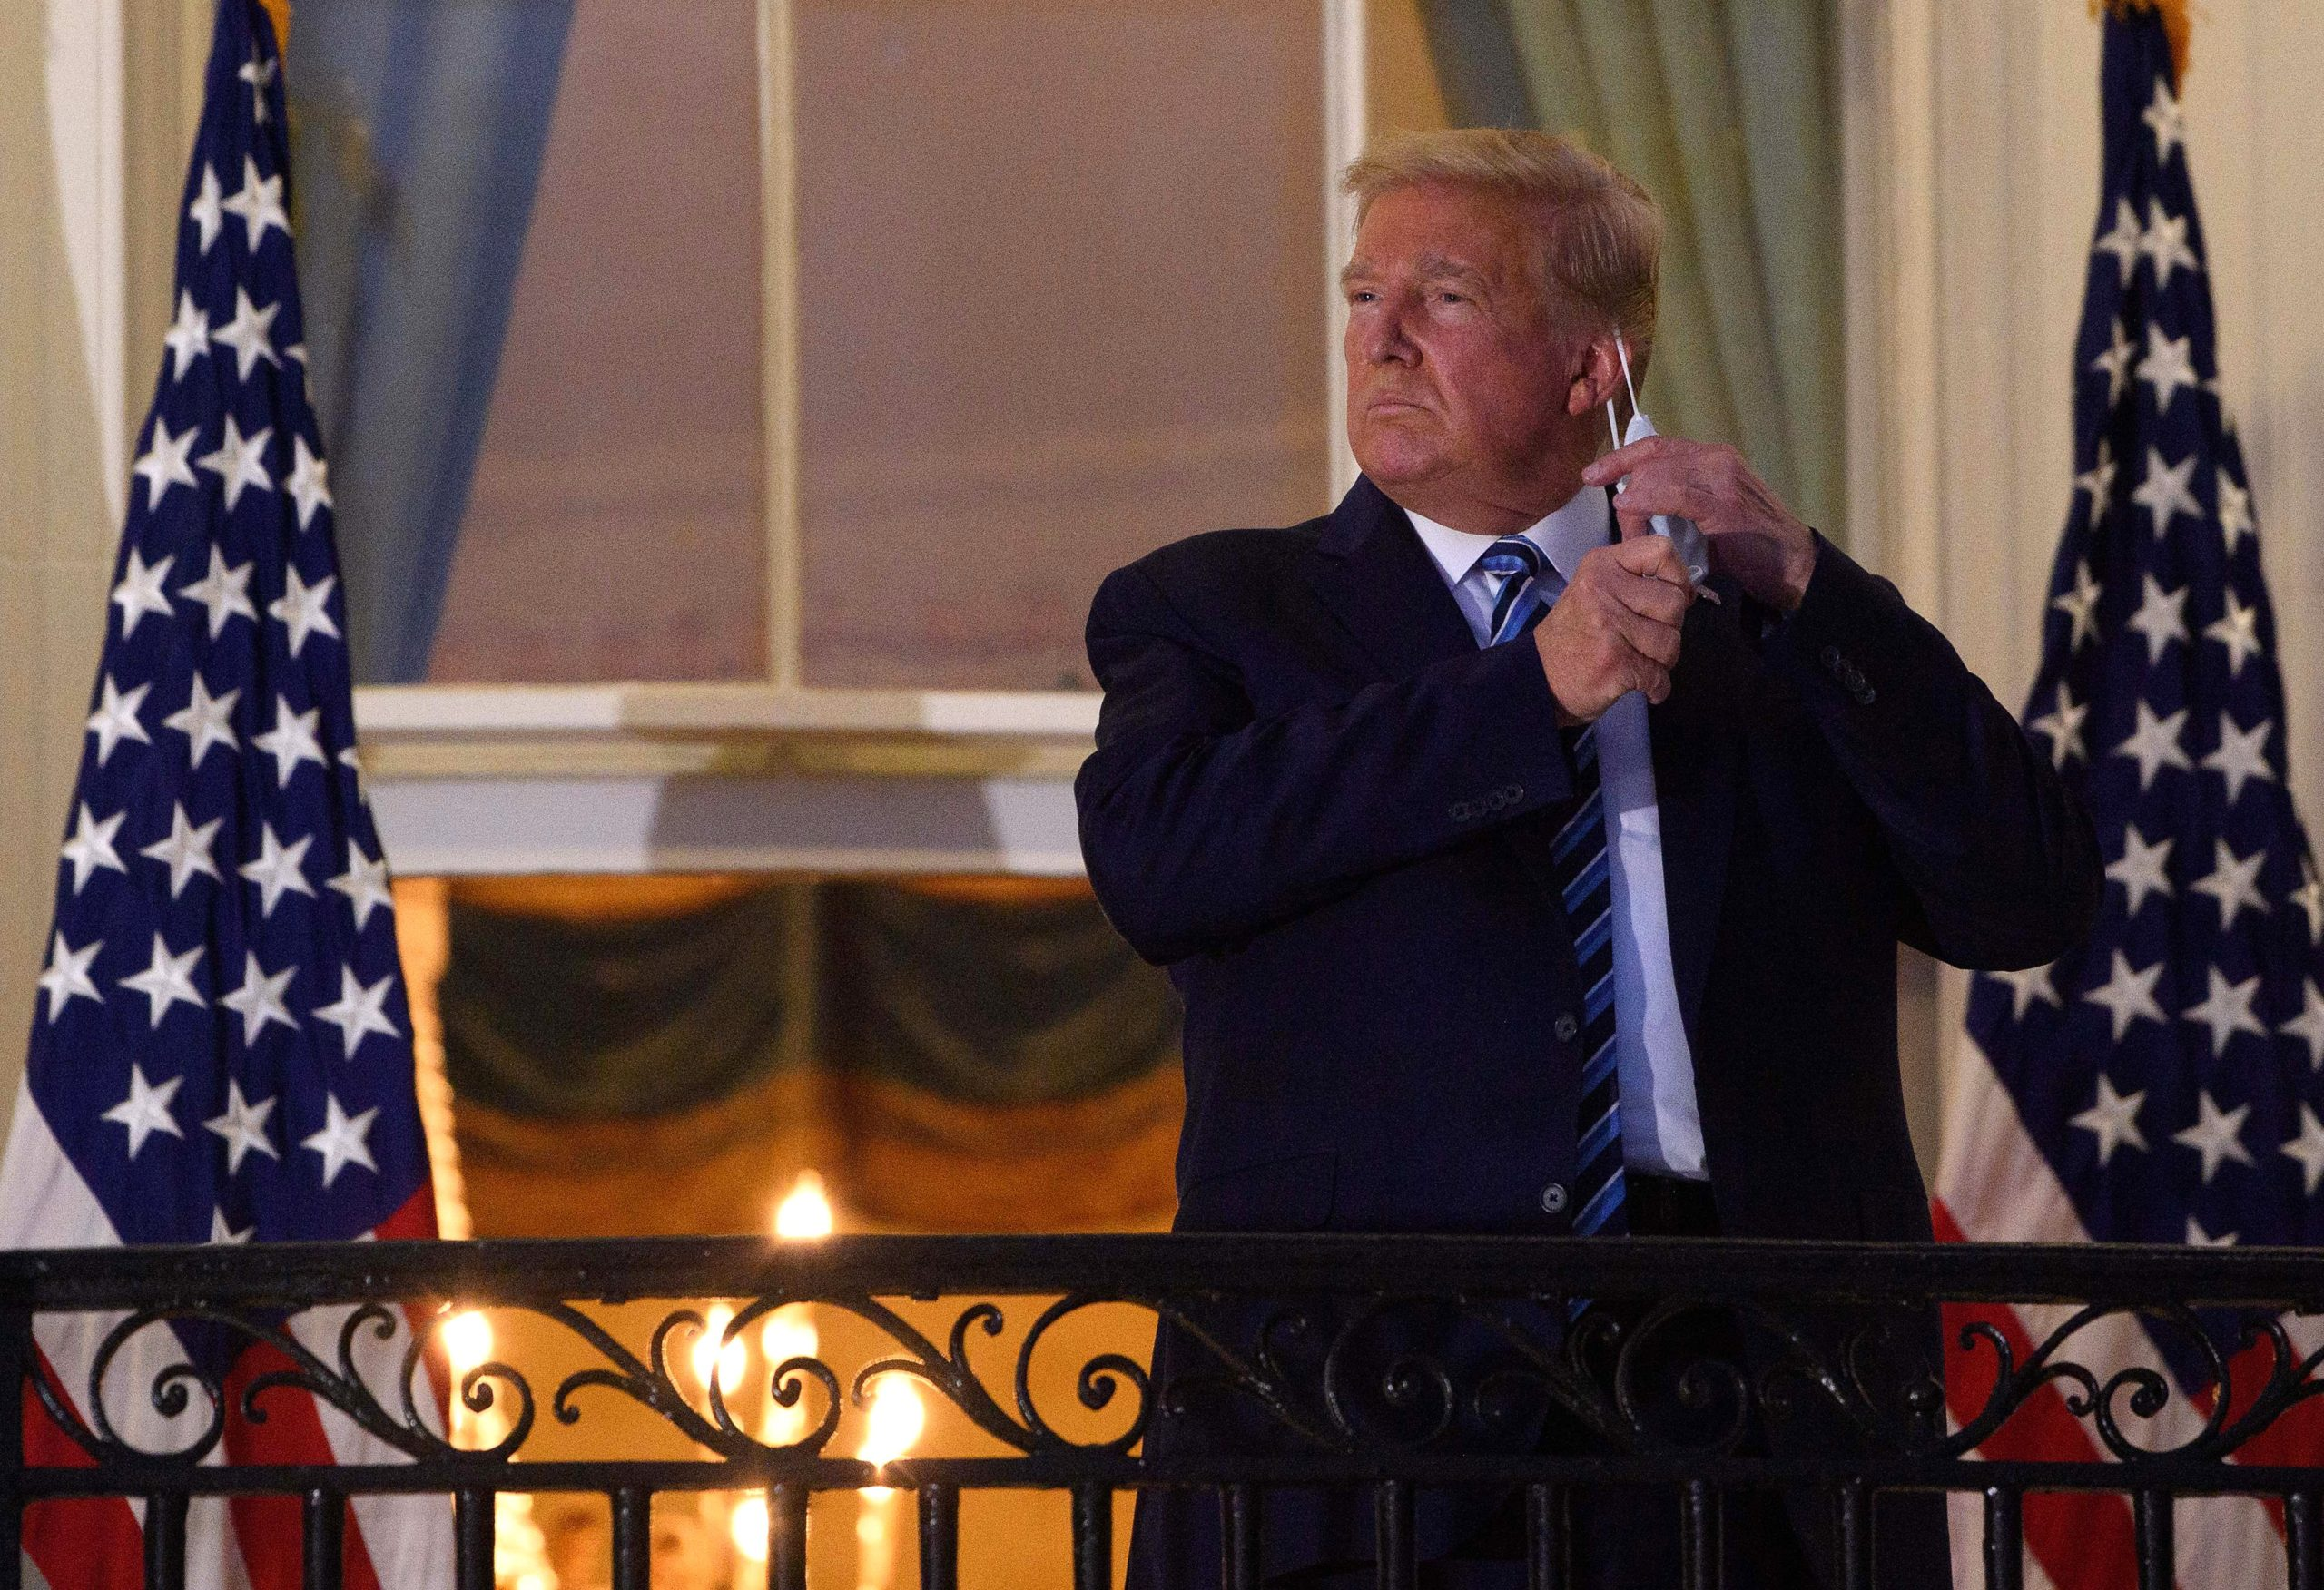 President Donald Trump takes off his mask as he arrives at the White House upon his return from Walter Reed Medical Center on Oct. 5. (Nicholas Kamm/AFP via Getty Images)